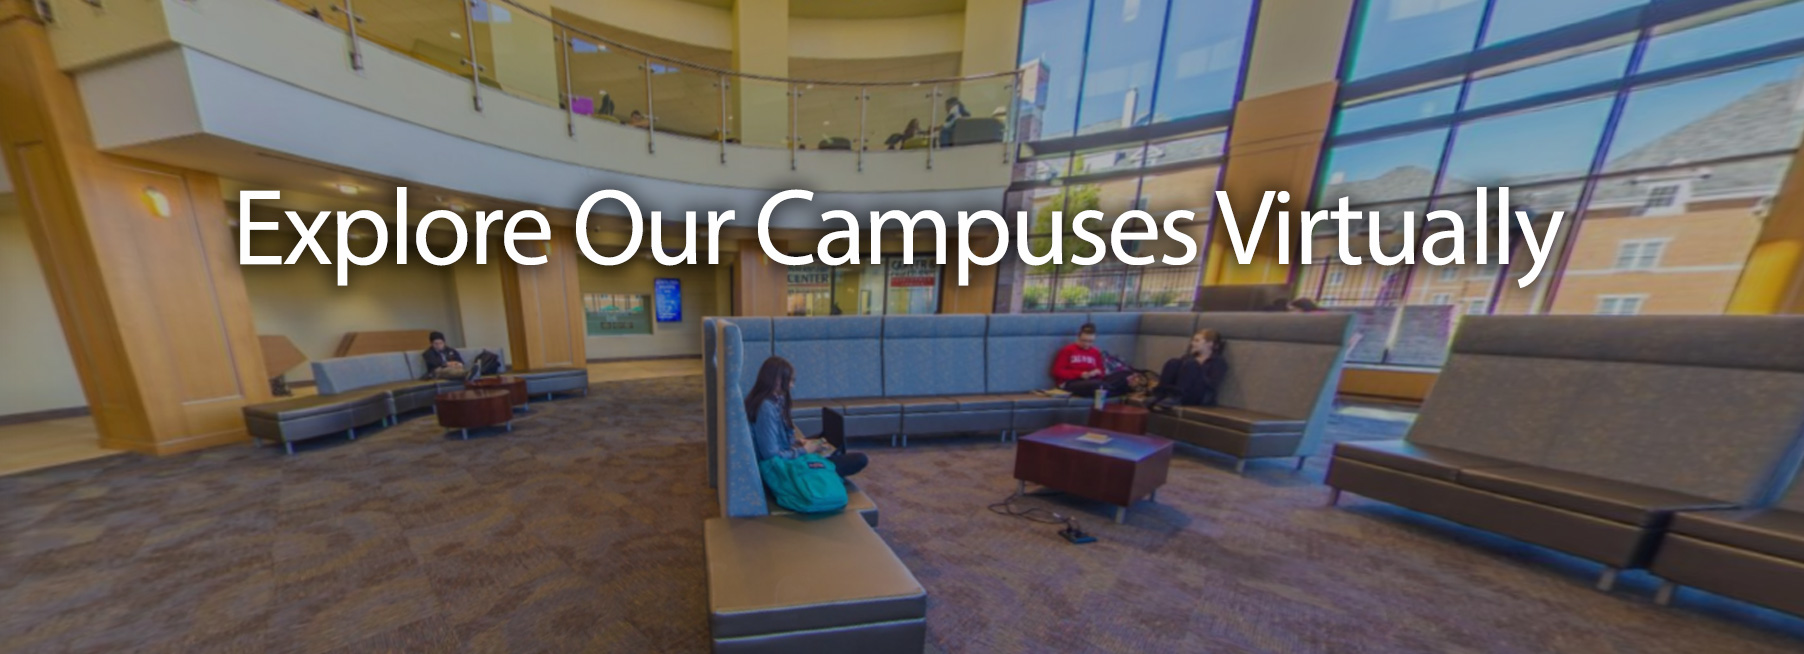 Explore our campuses virtually